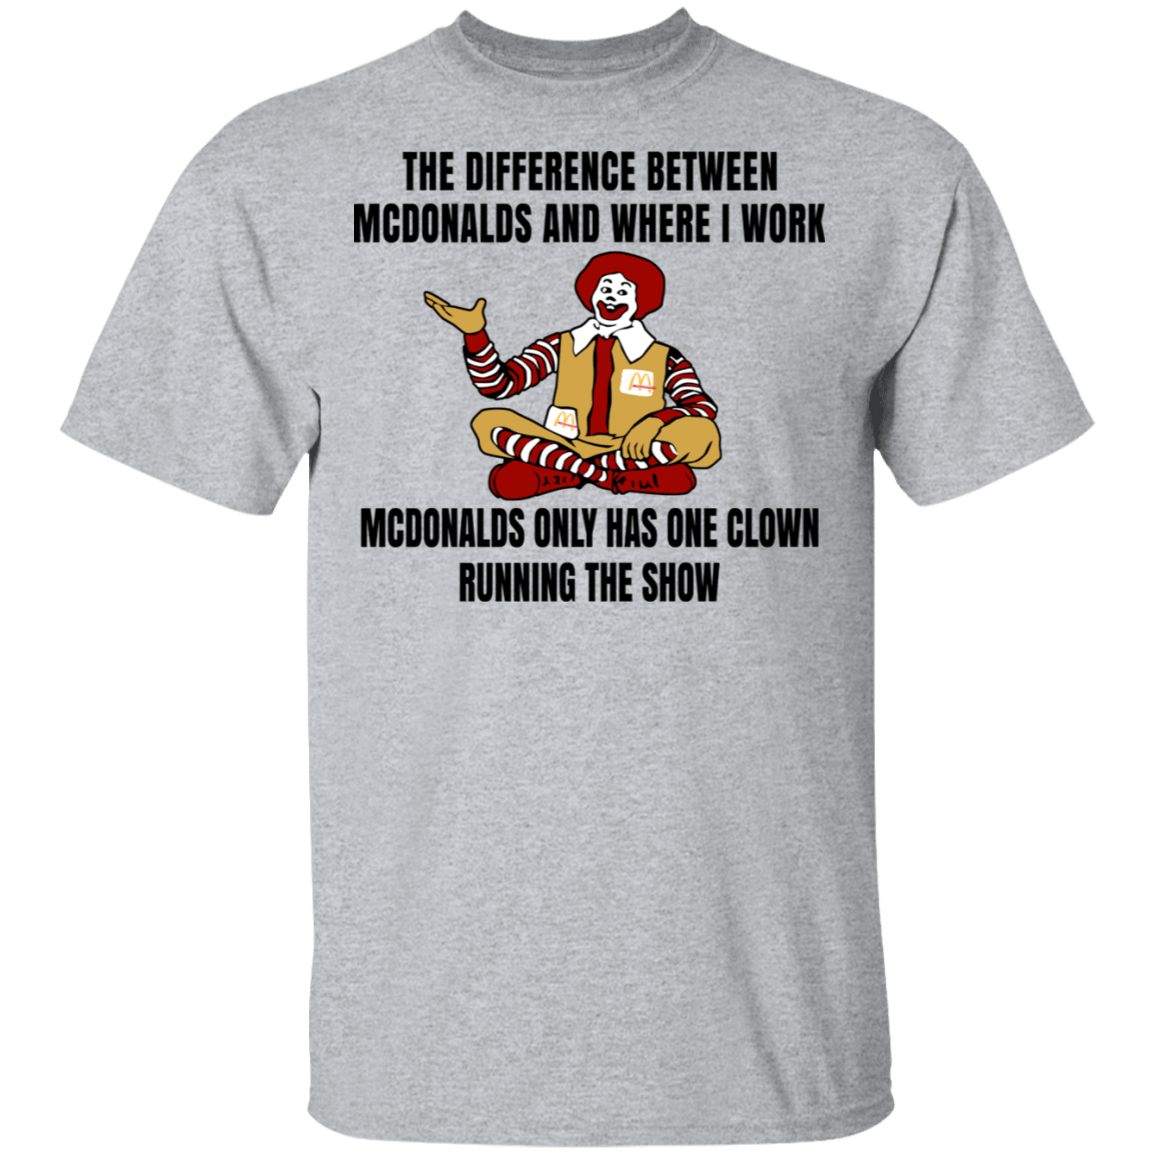 The Difference Between McDonalds And Where I Work McDonalds Only Has One Clown Running The Show T-Shirts, Hoodies, Tank 22-115-79763379-254 - Tee Ript